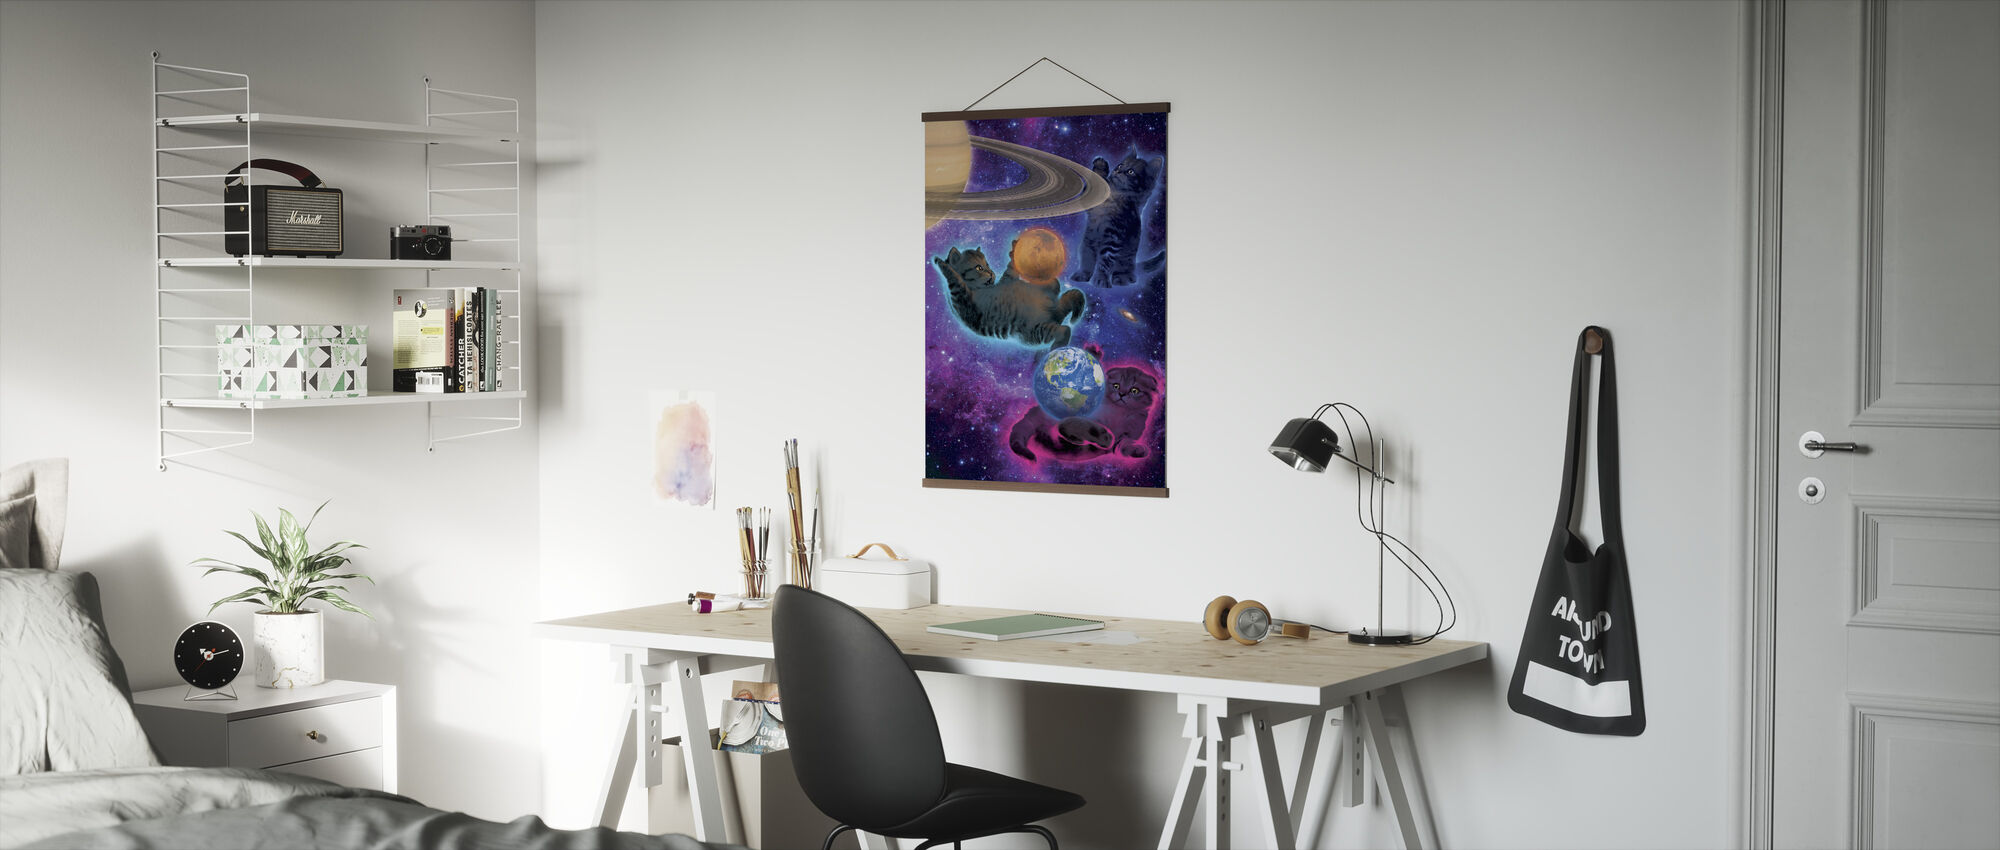 Cosmic Kittens - Poster - Office